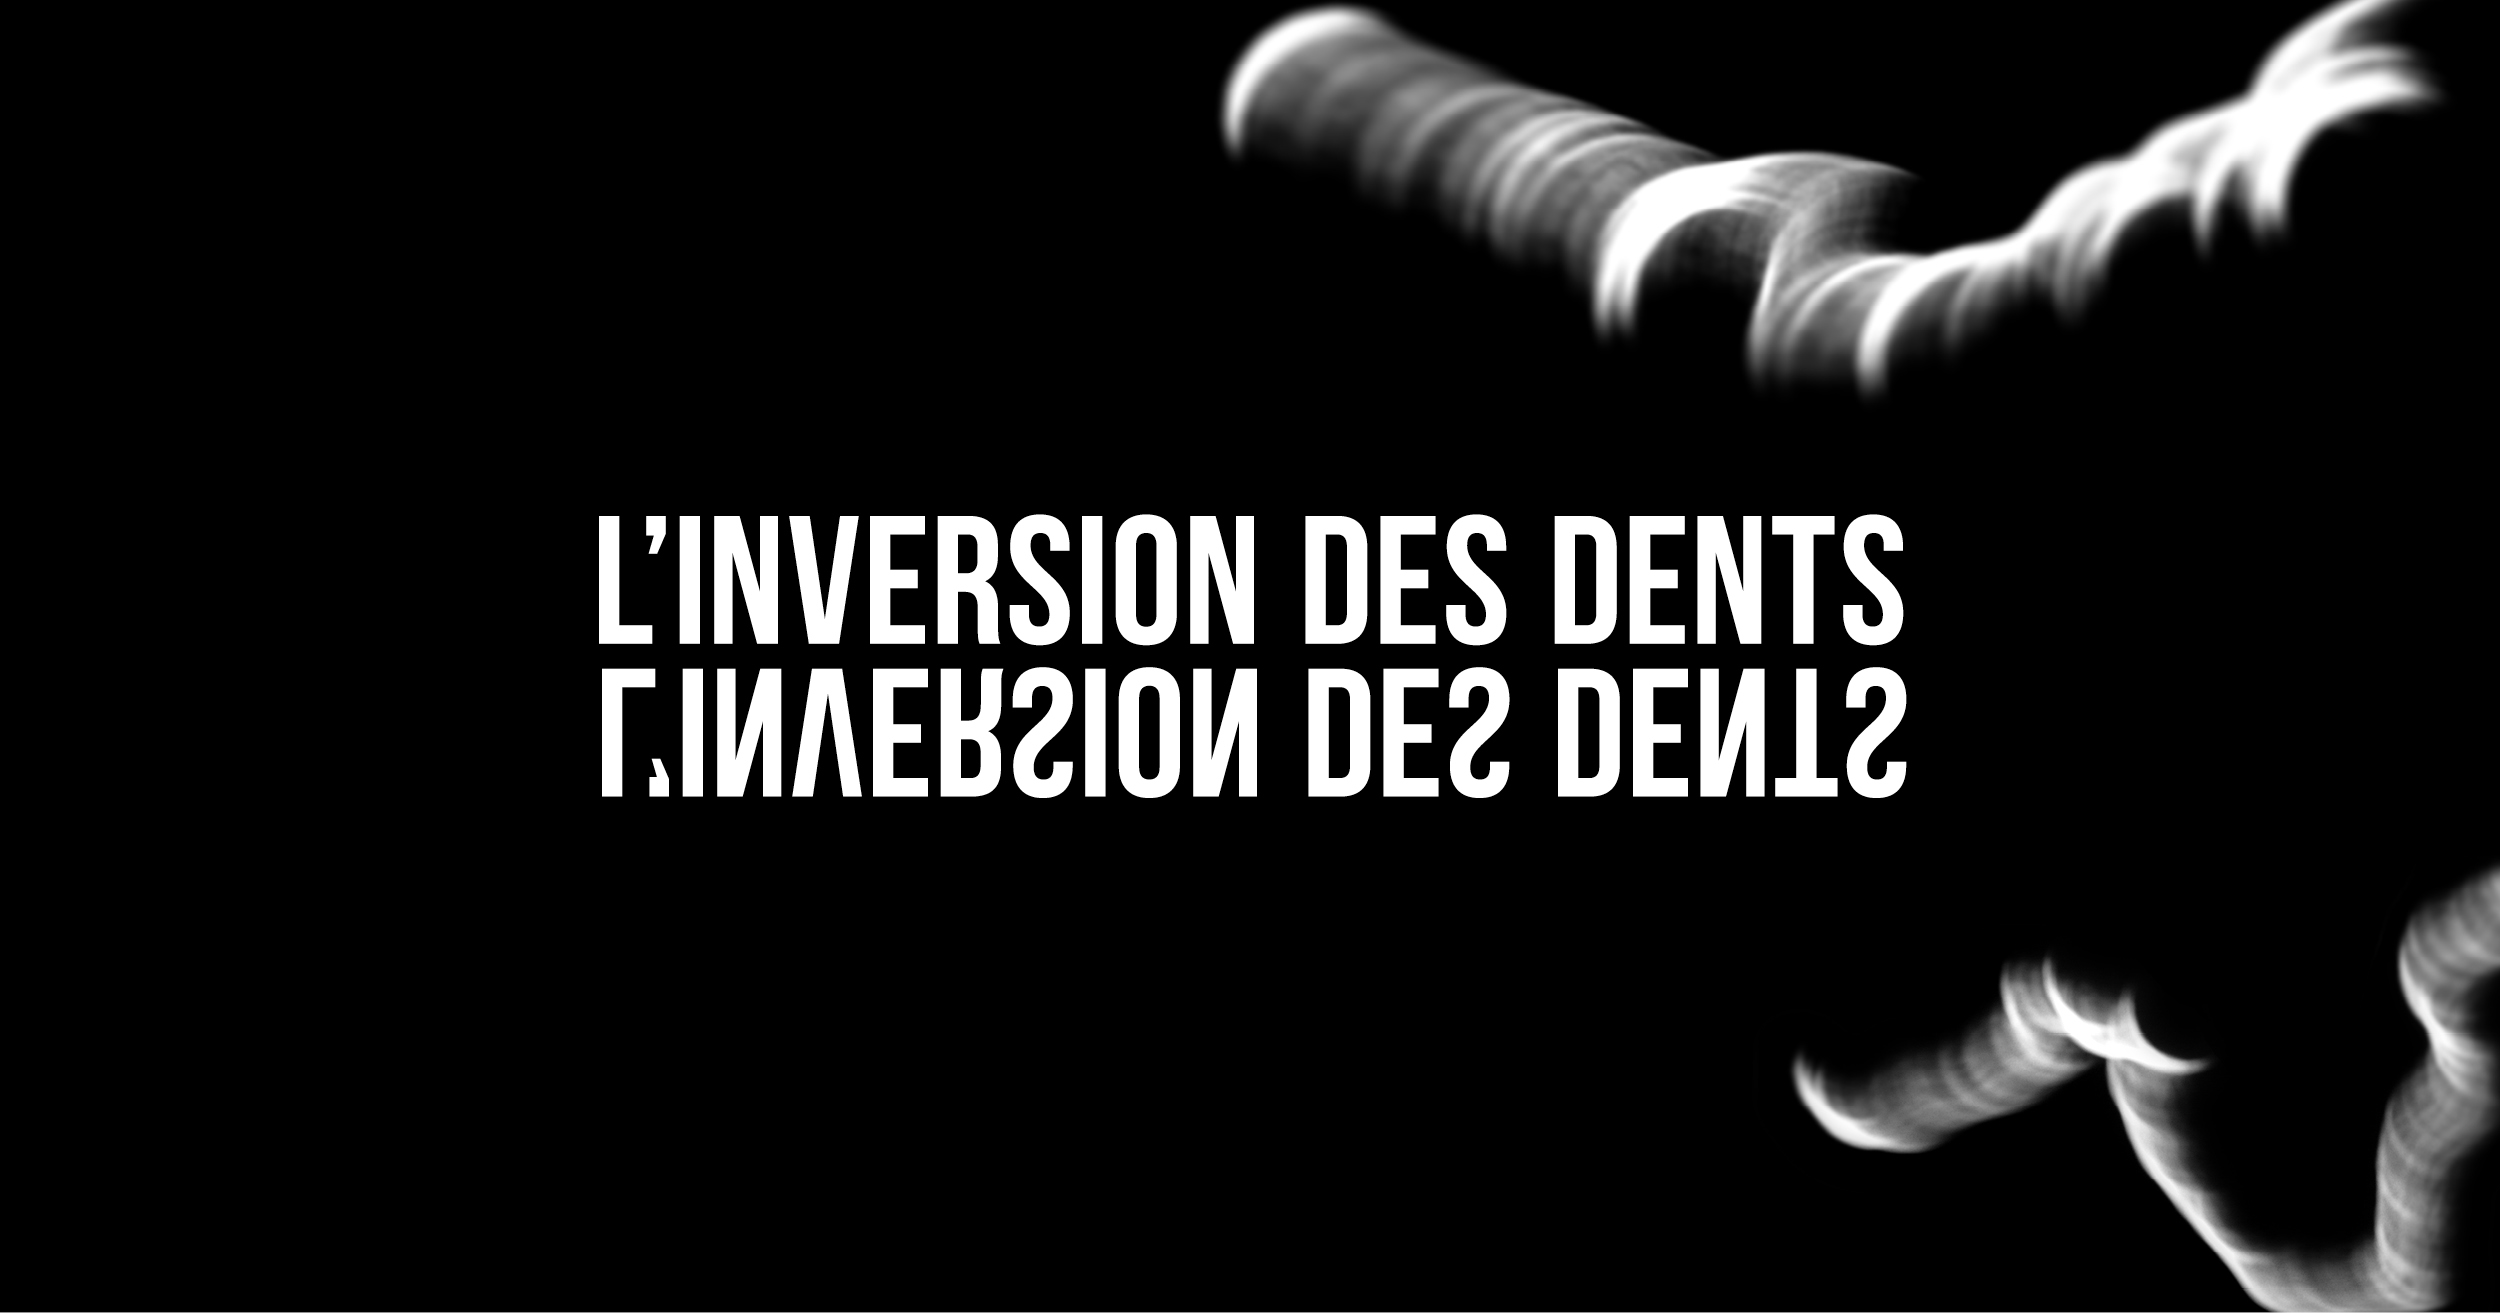 Trainance - L'INVERSION DES DENTS - AVIGNON - 13 JUILLET 2018 10:15